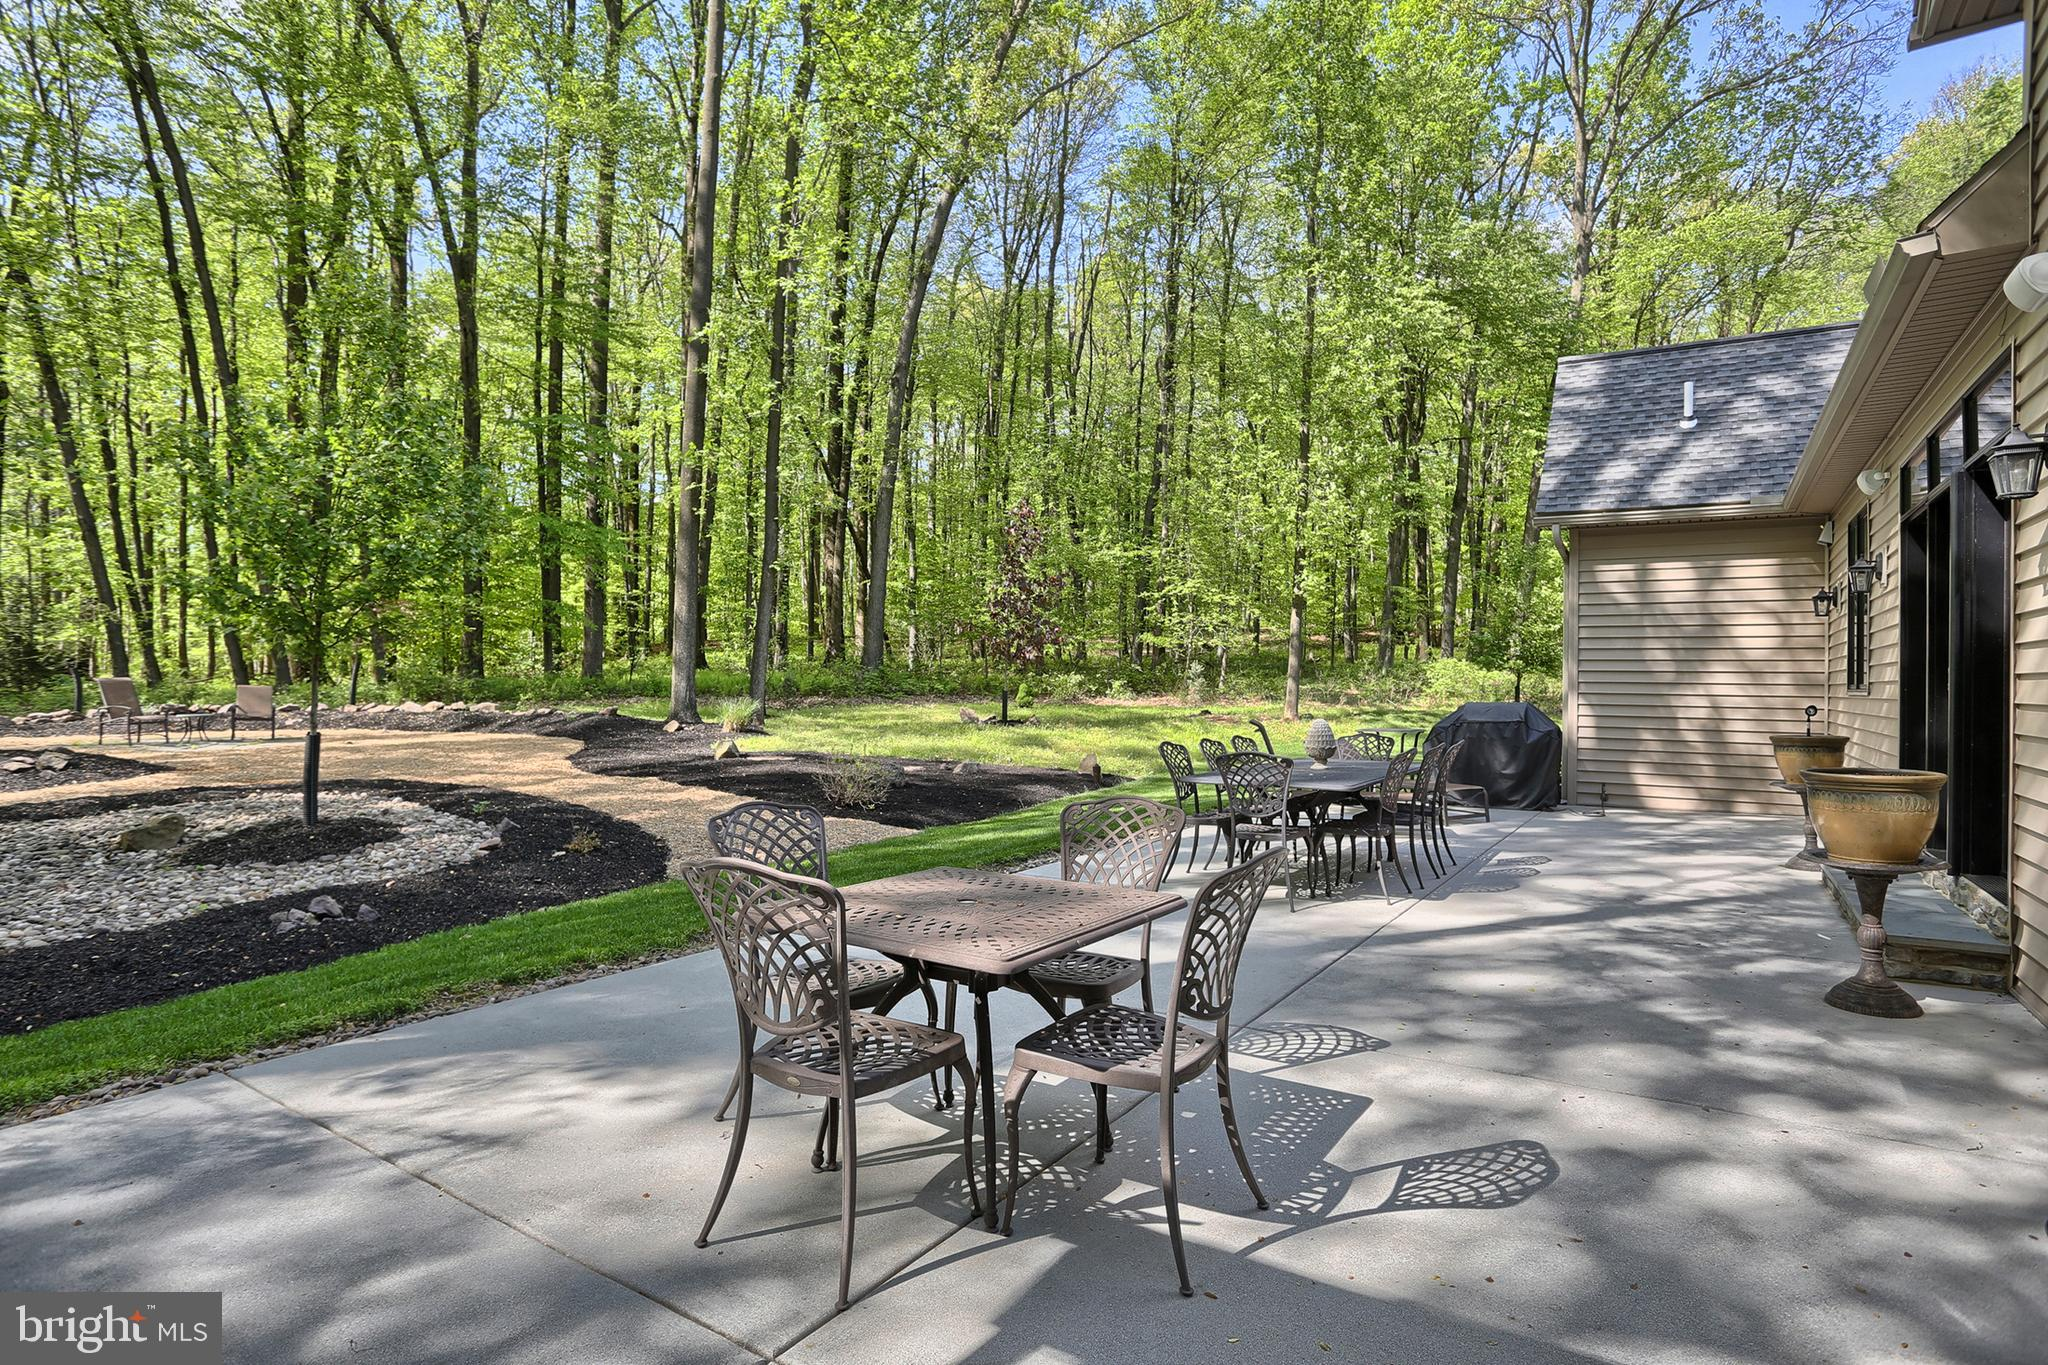 .Small community with 1+acre parcels near Hershey~